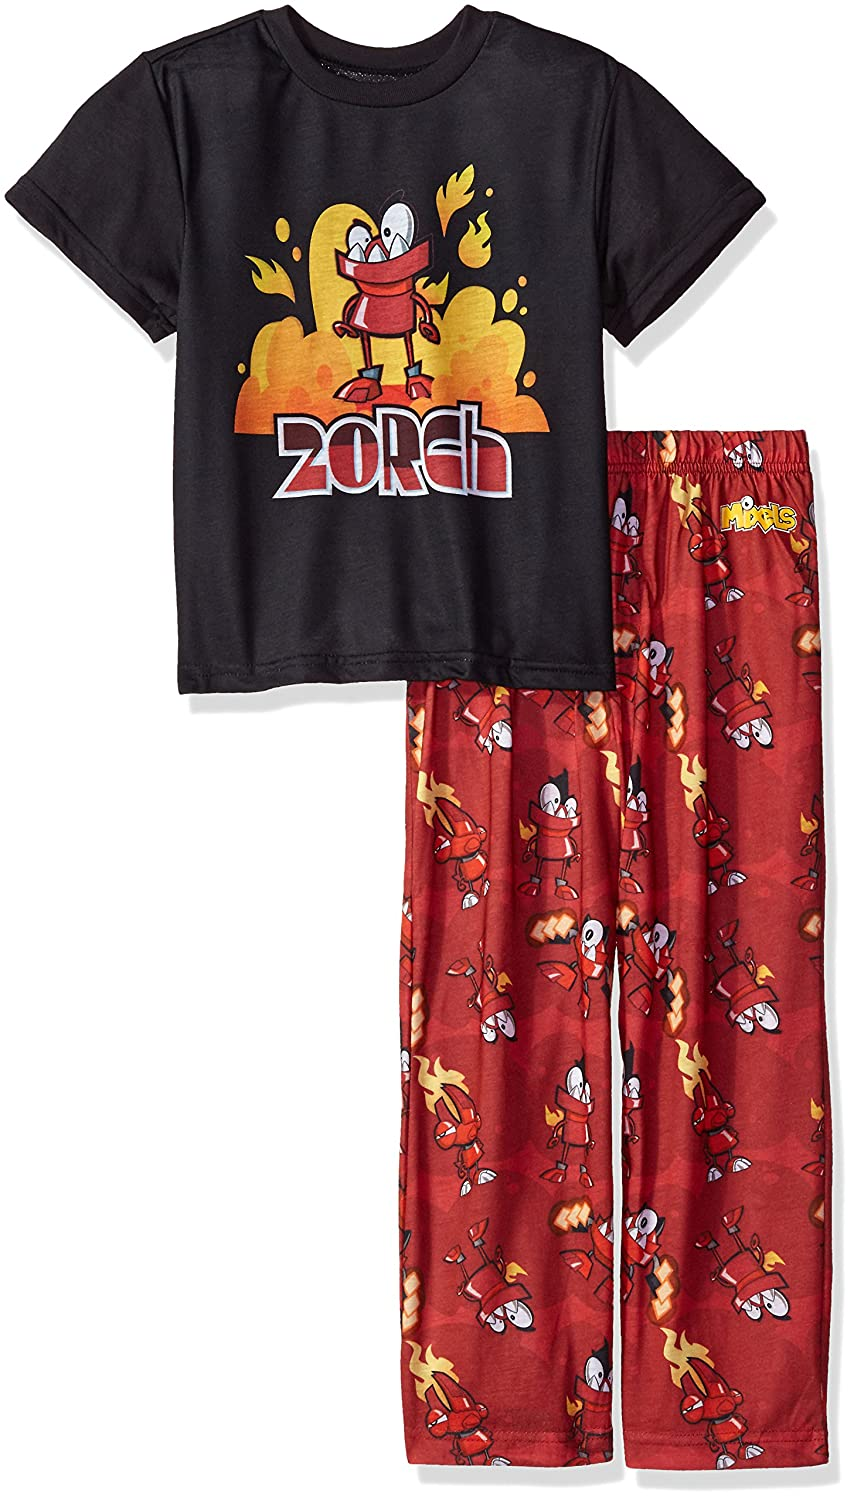 INTIMO Boys Lego Mixel Zorch 2pc Poly